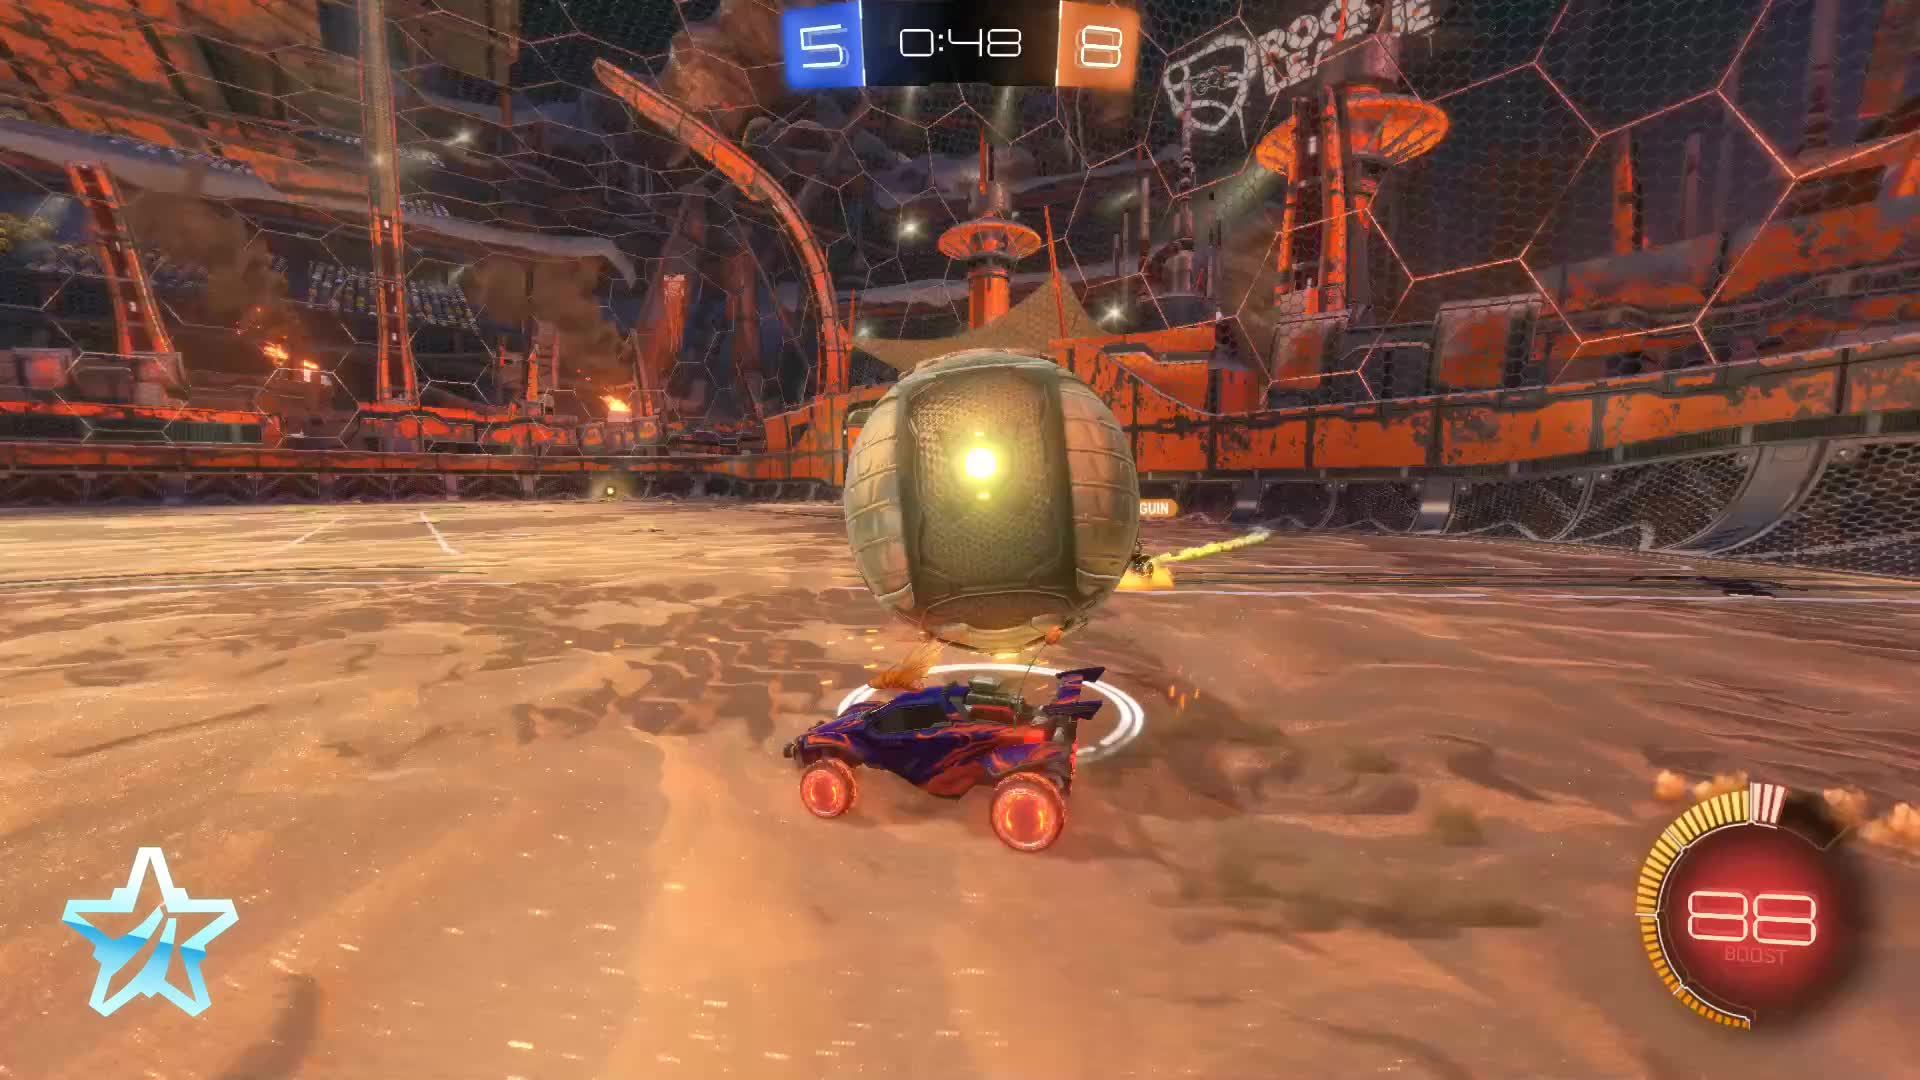 Gif Your Game, GifYourGame, Goal, ItIsK3vin, Rocket League, RocketLeague, Goal 14: ItIsK3vin GIFs